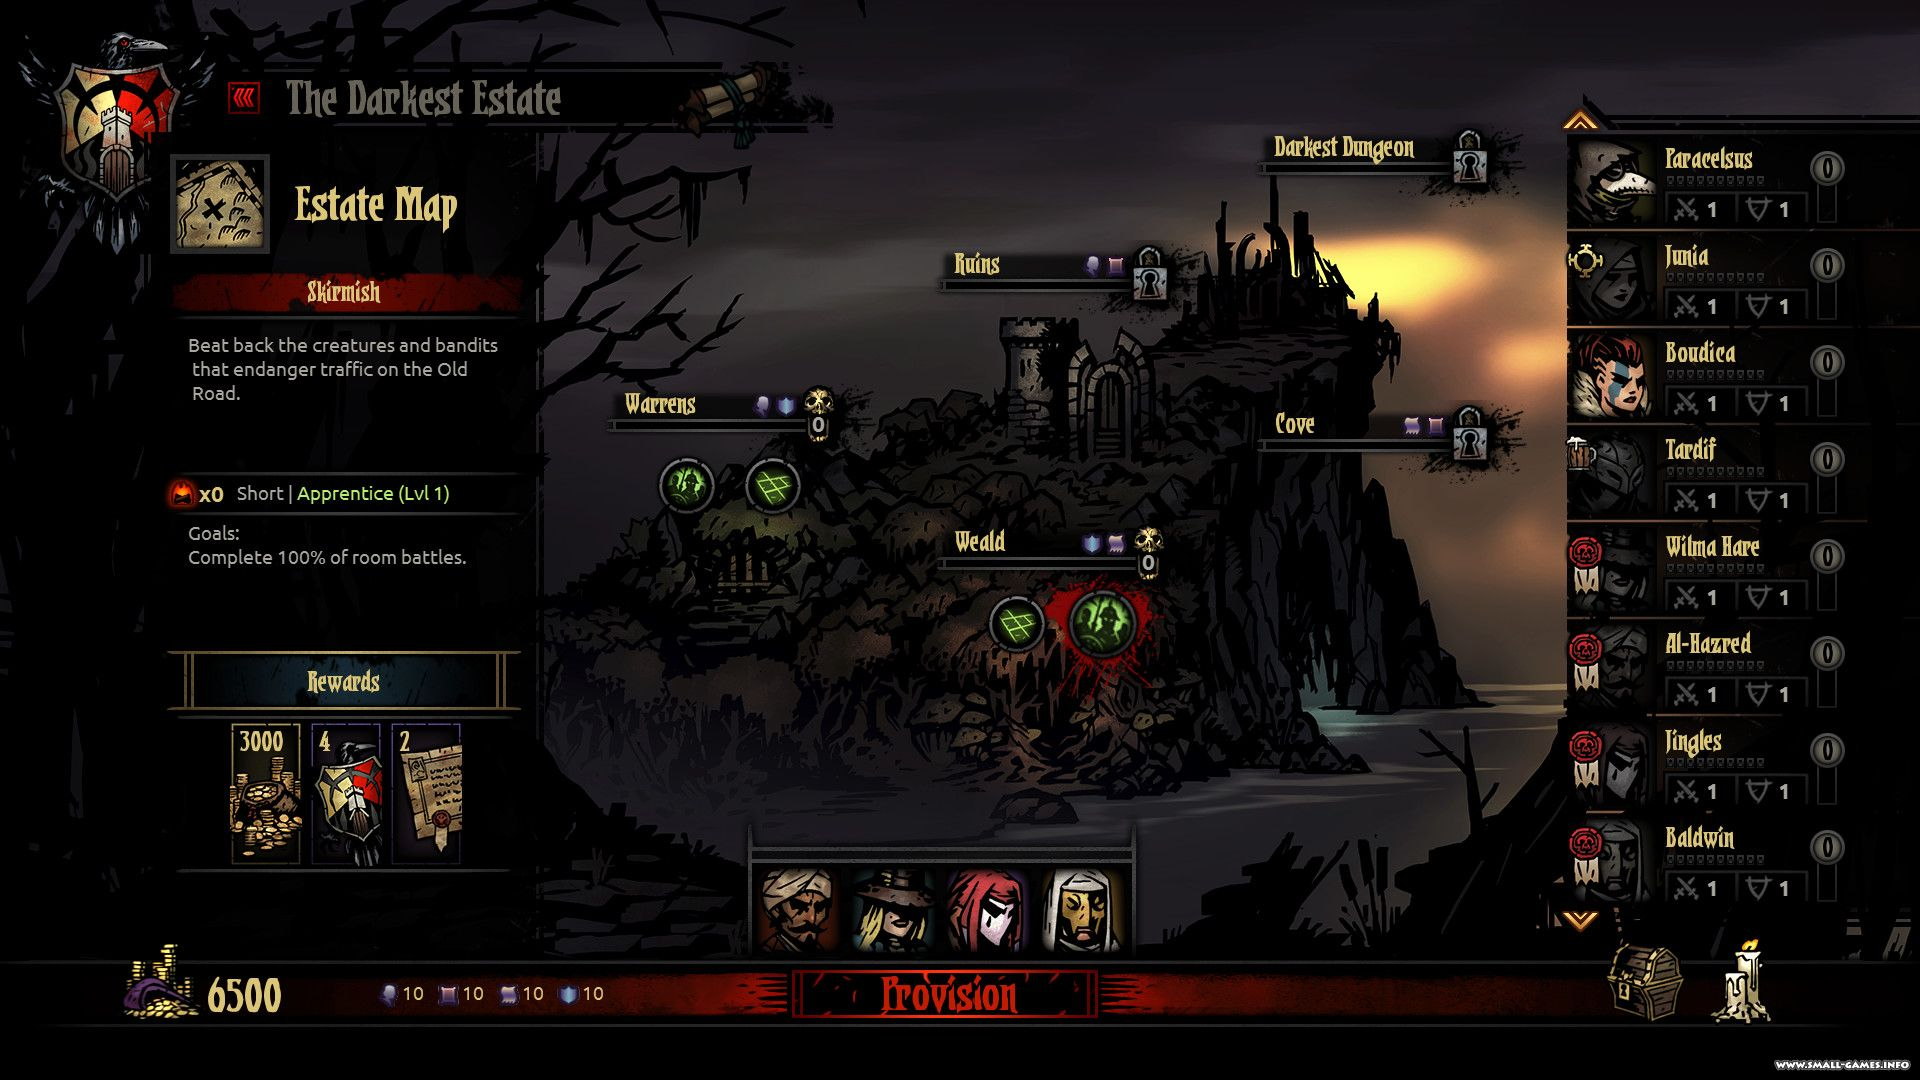 darkest_dungeon_steam_early_a_8.jpg